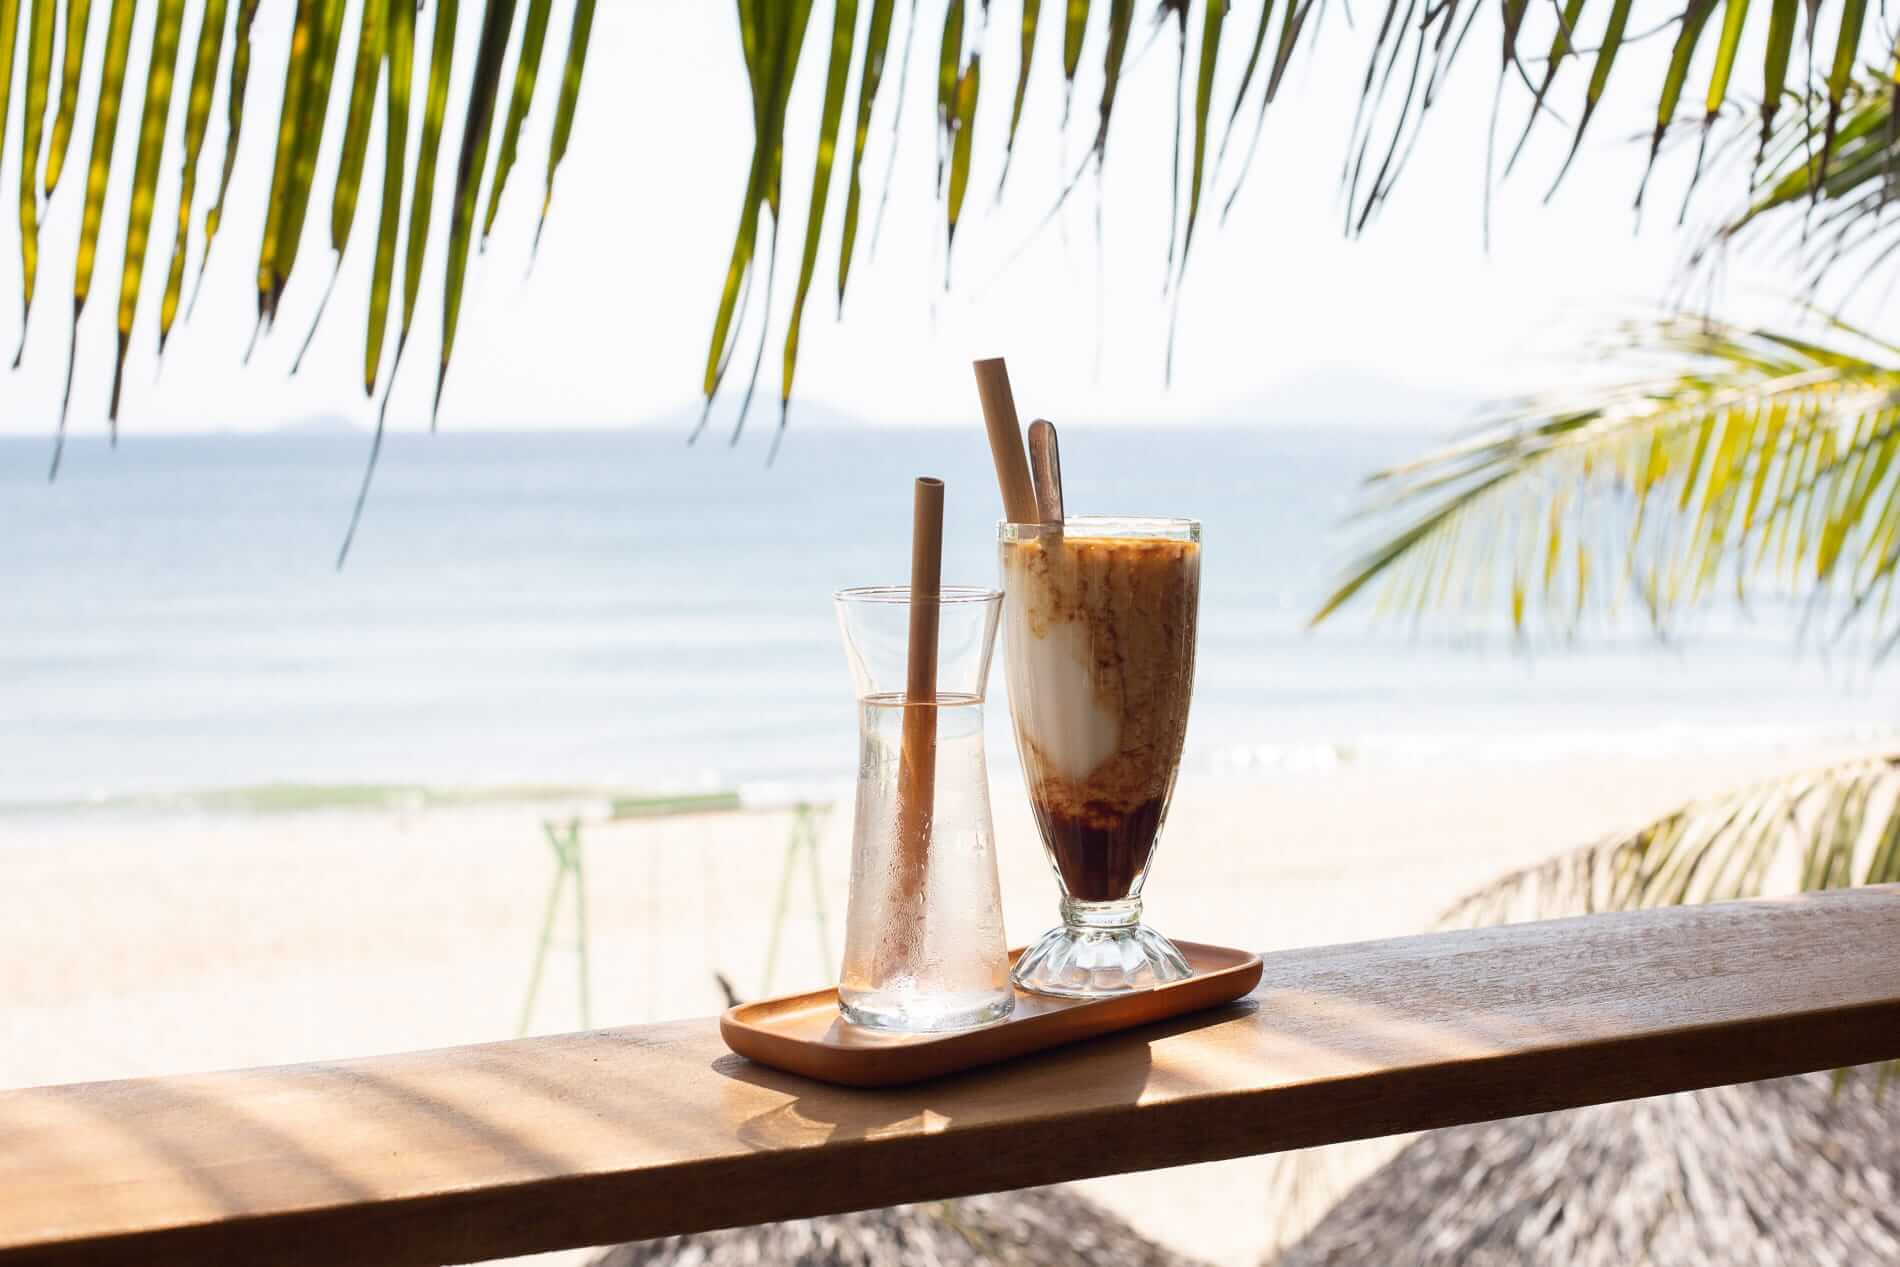 A coconut coffee and beach view at Sound of Silence Coffee